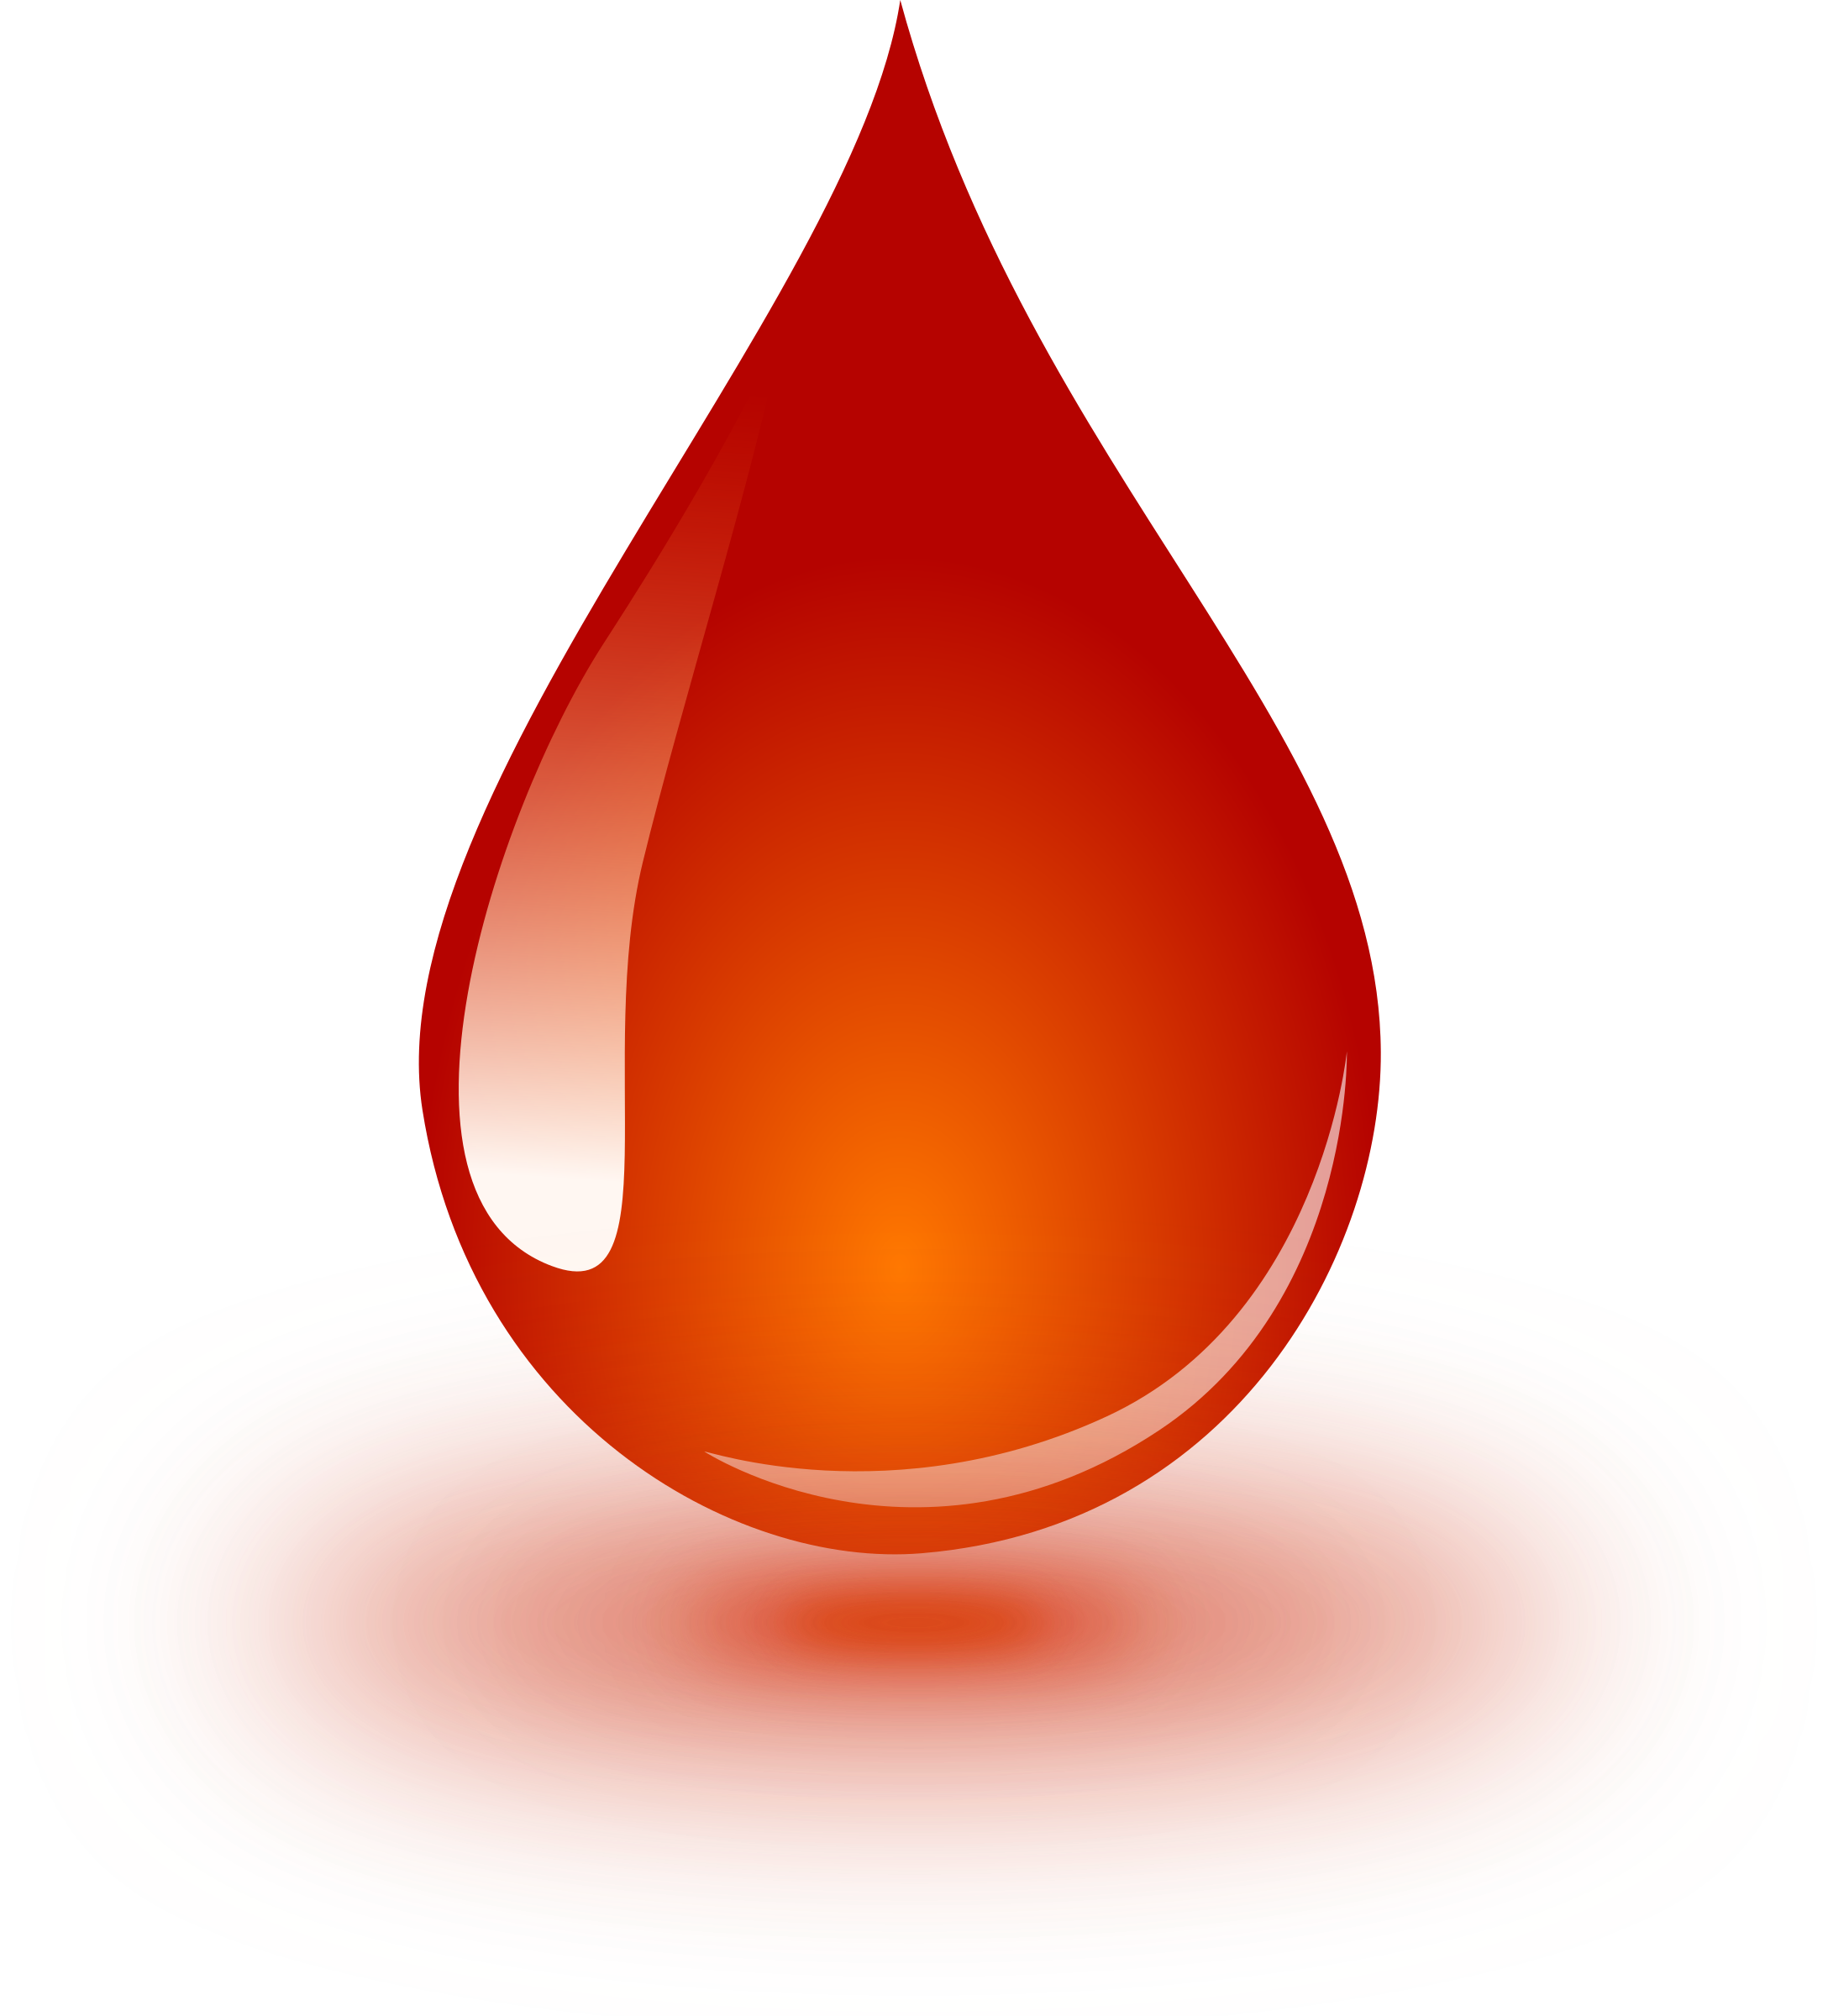 Drop big image png. Blood clipart blood droplet